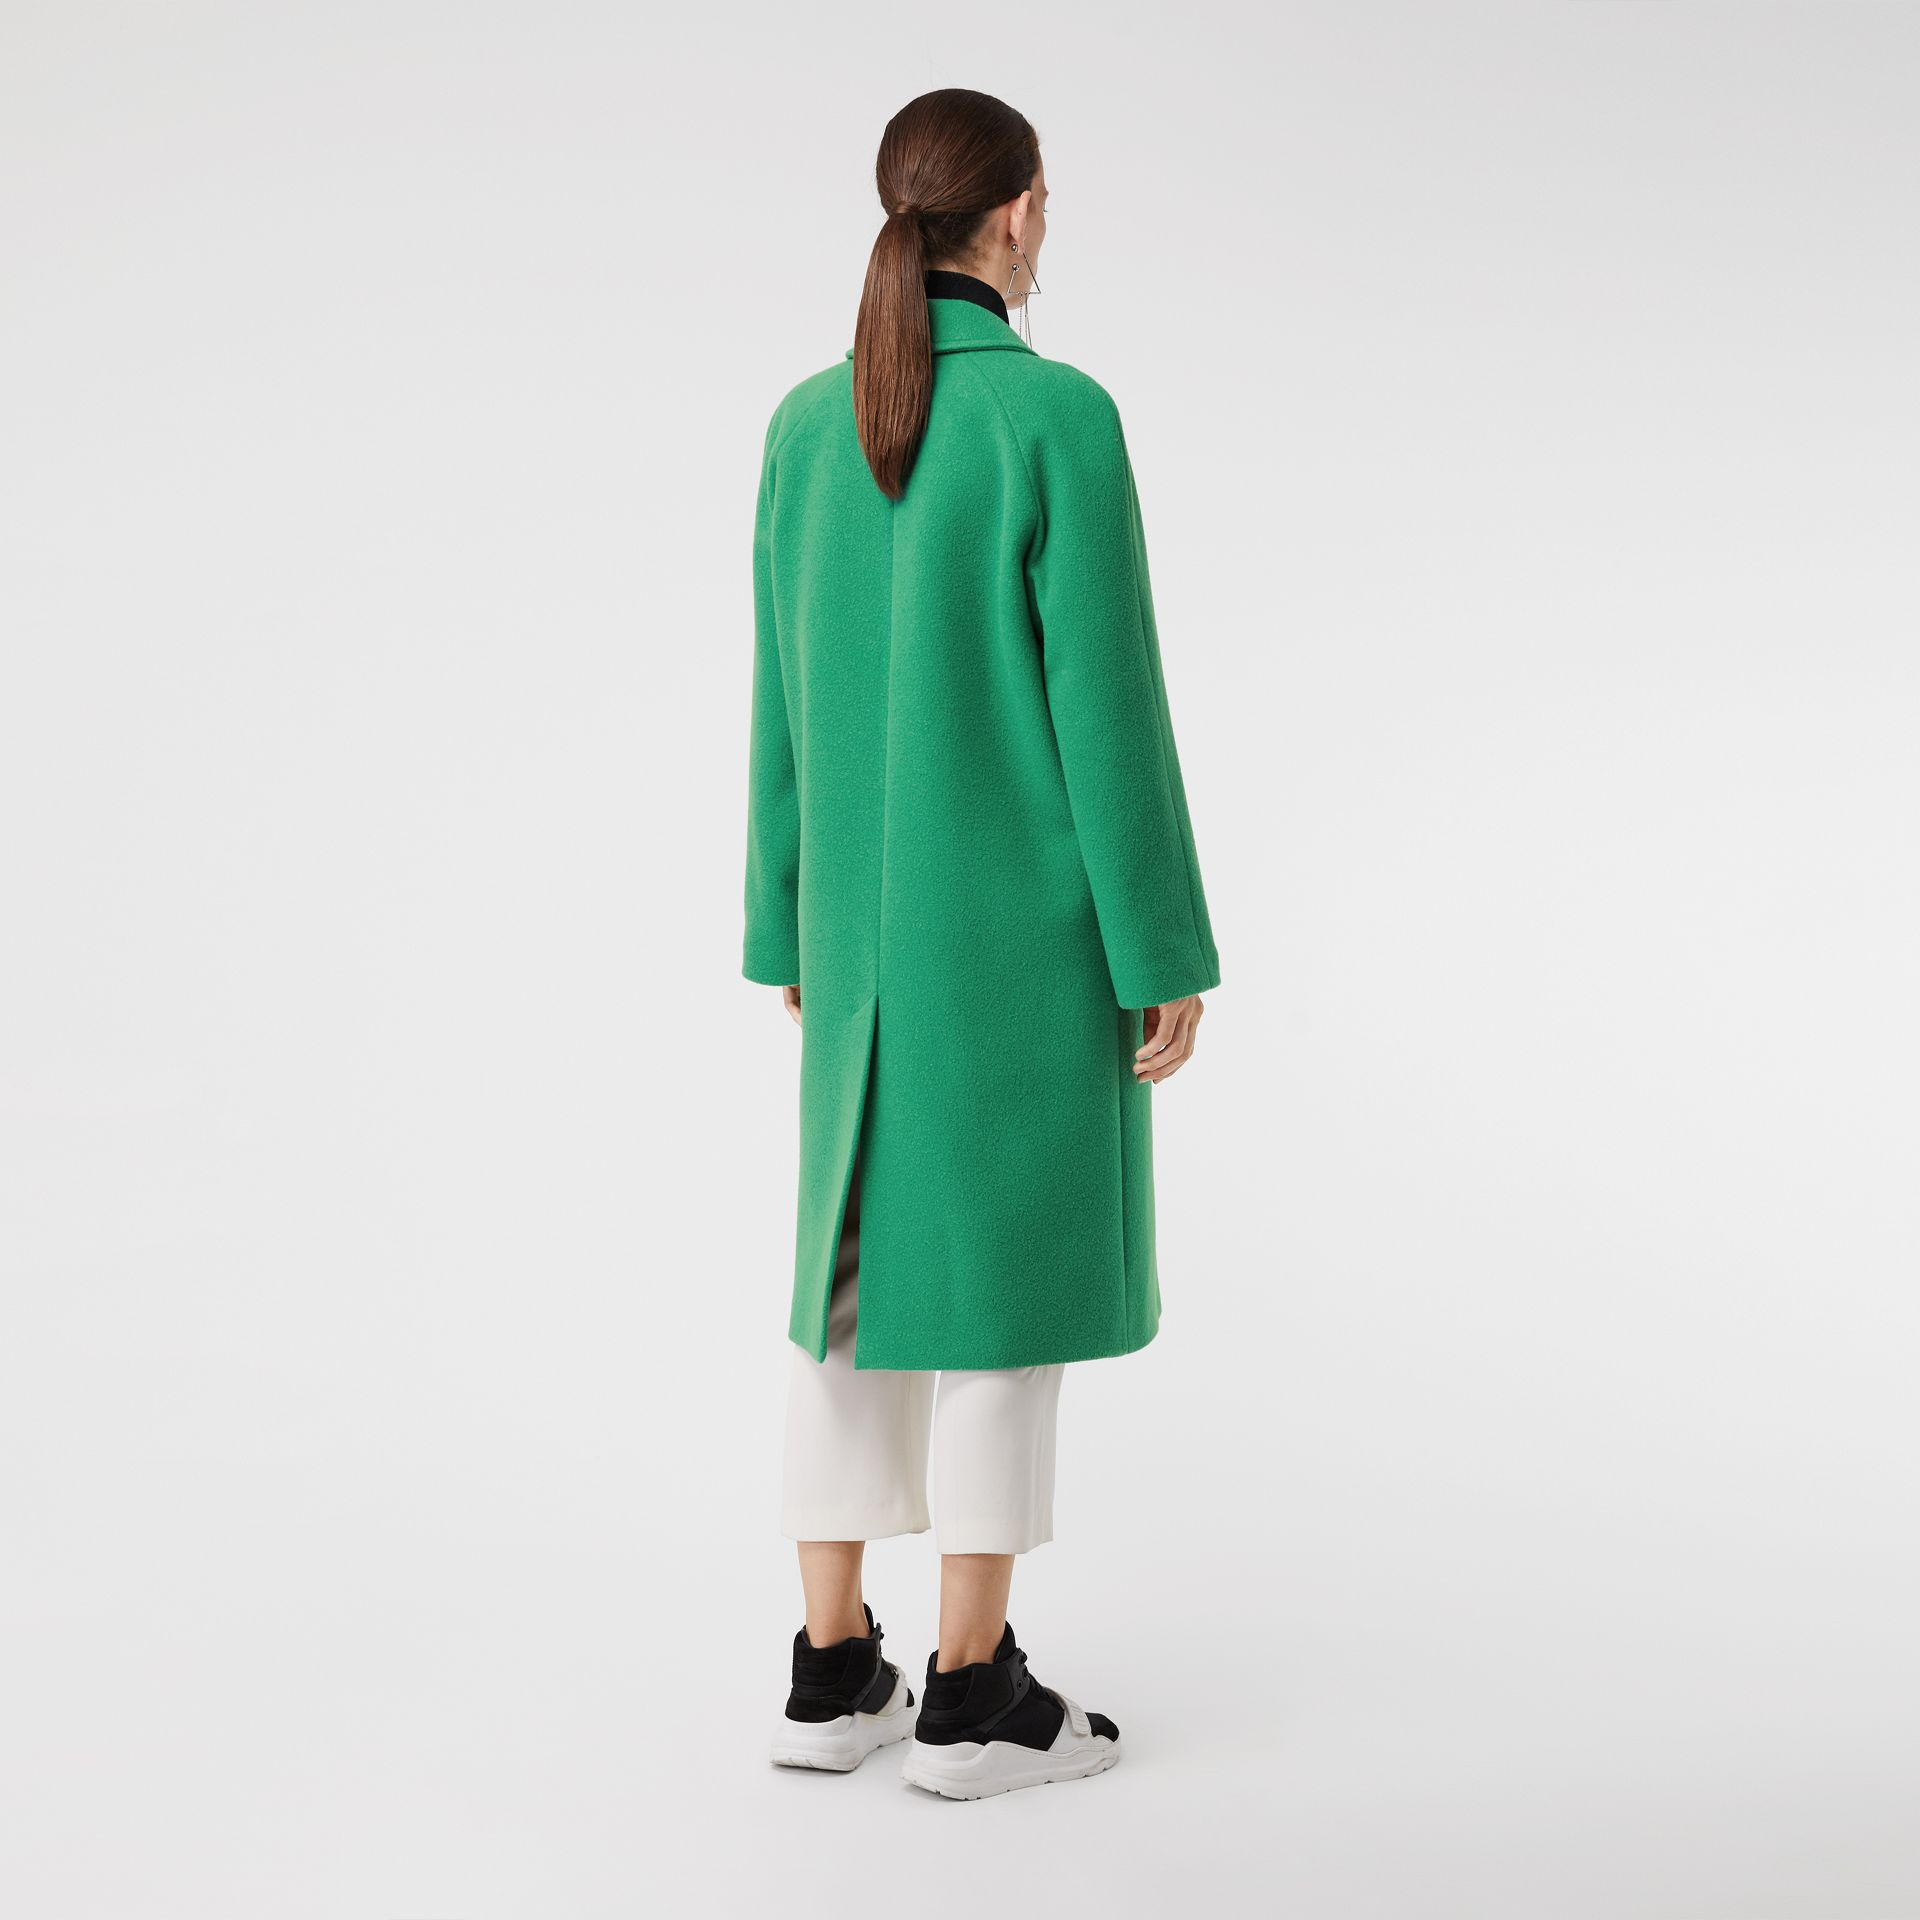 Wool Blend Tailored Coat in Bright Green - Women | Burberry Hong Kong - gallery image 2